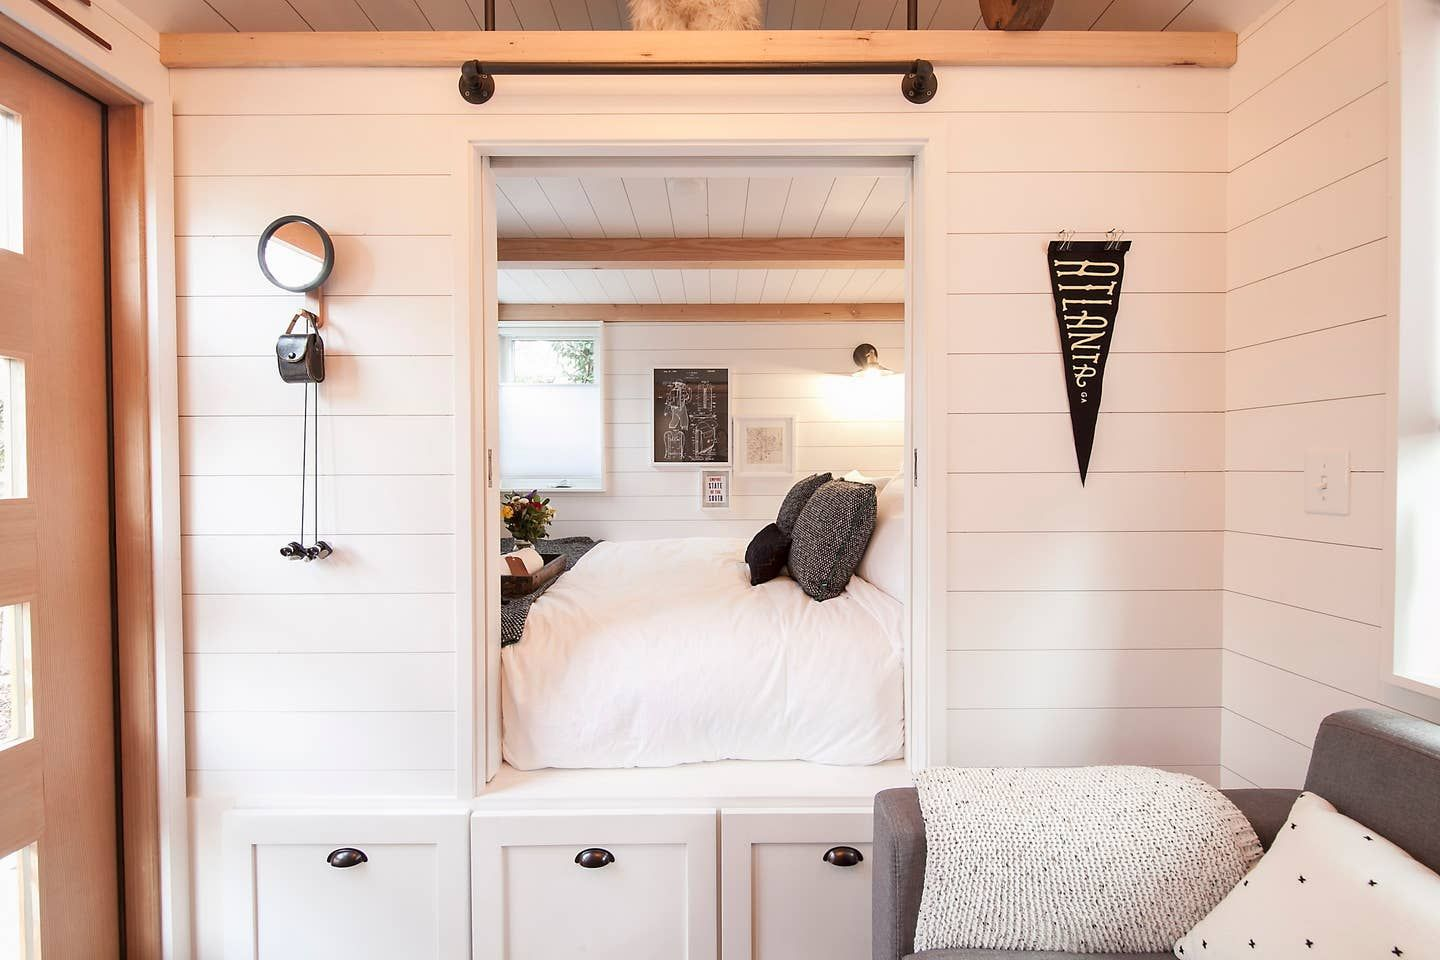 50 Tiny Houses You Can Rent on Airbnb in 2020! in 2020